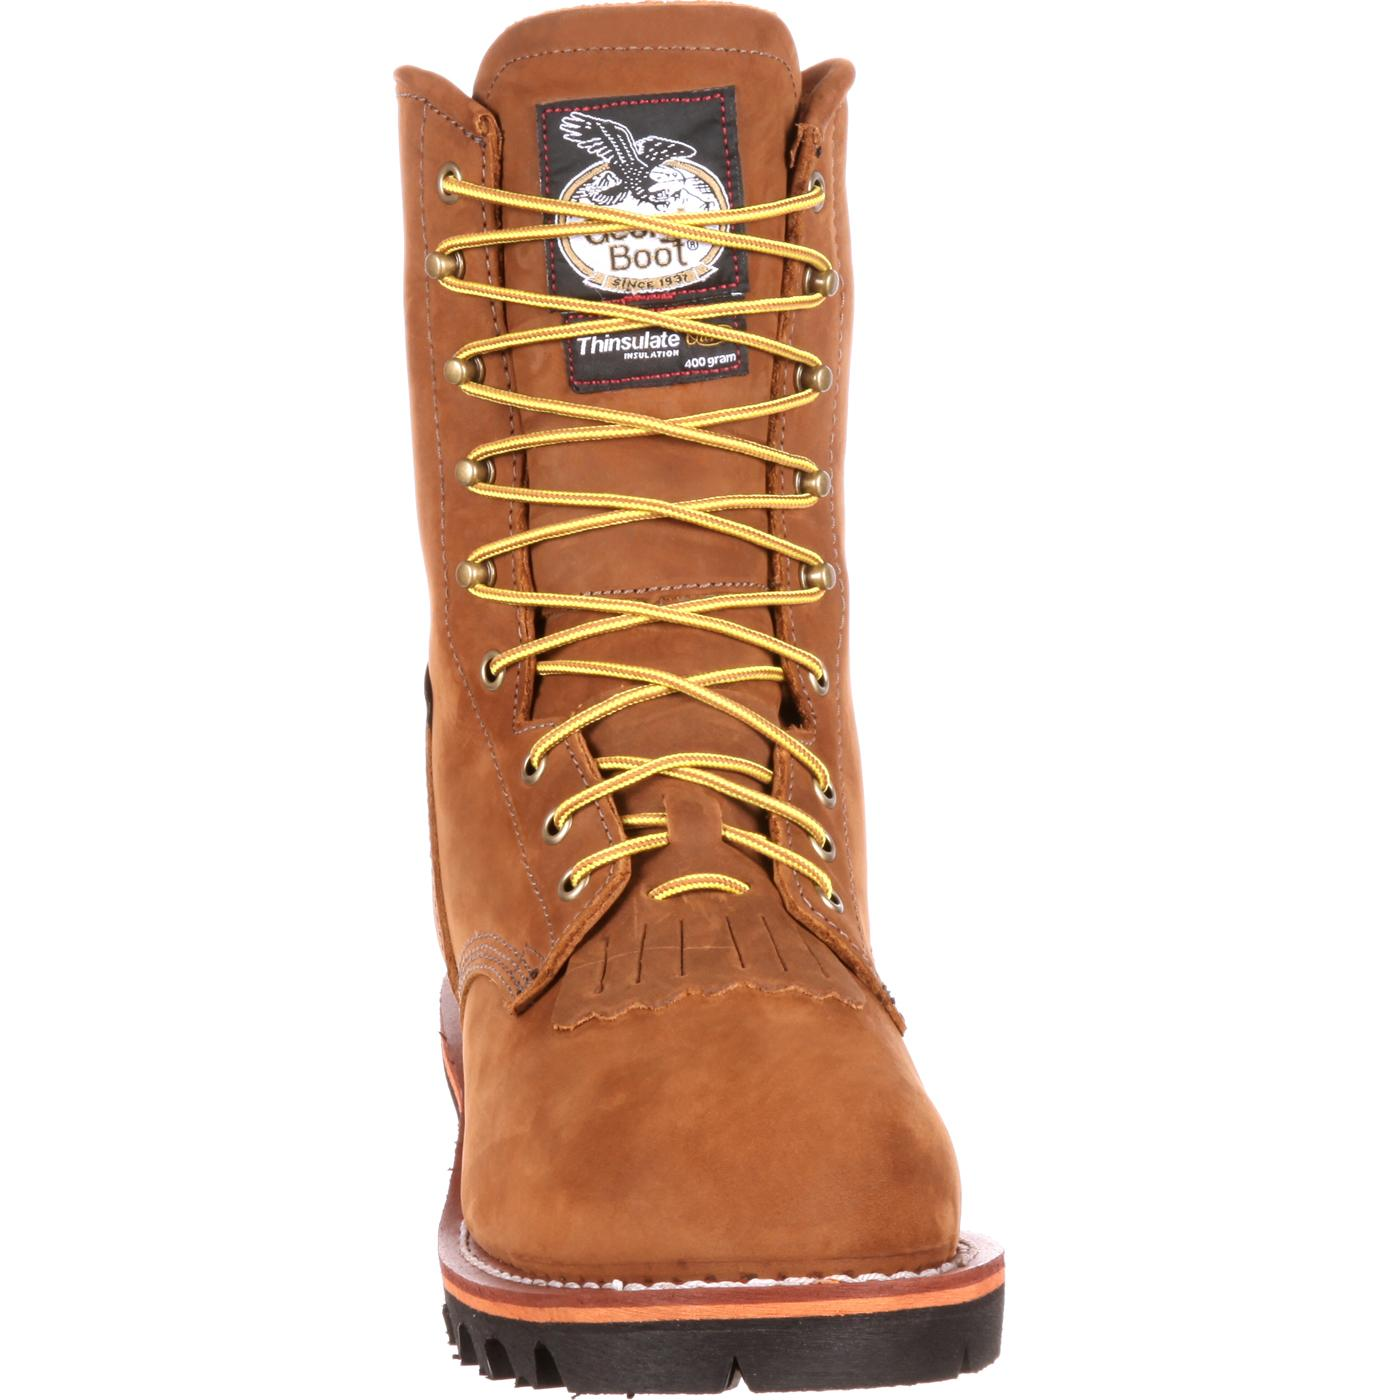 a438dca0ae8 Georgia Boot Steel Toe GORE-TEX® Waterproof Insulated Logger Boot